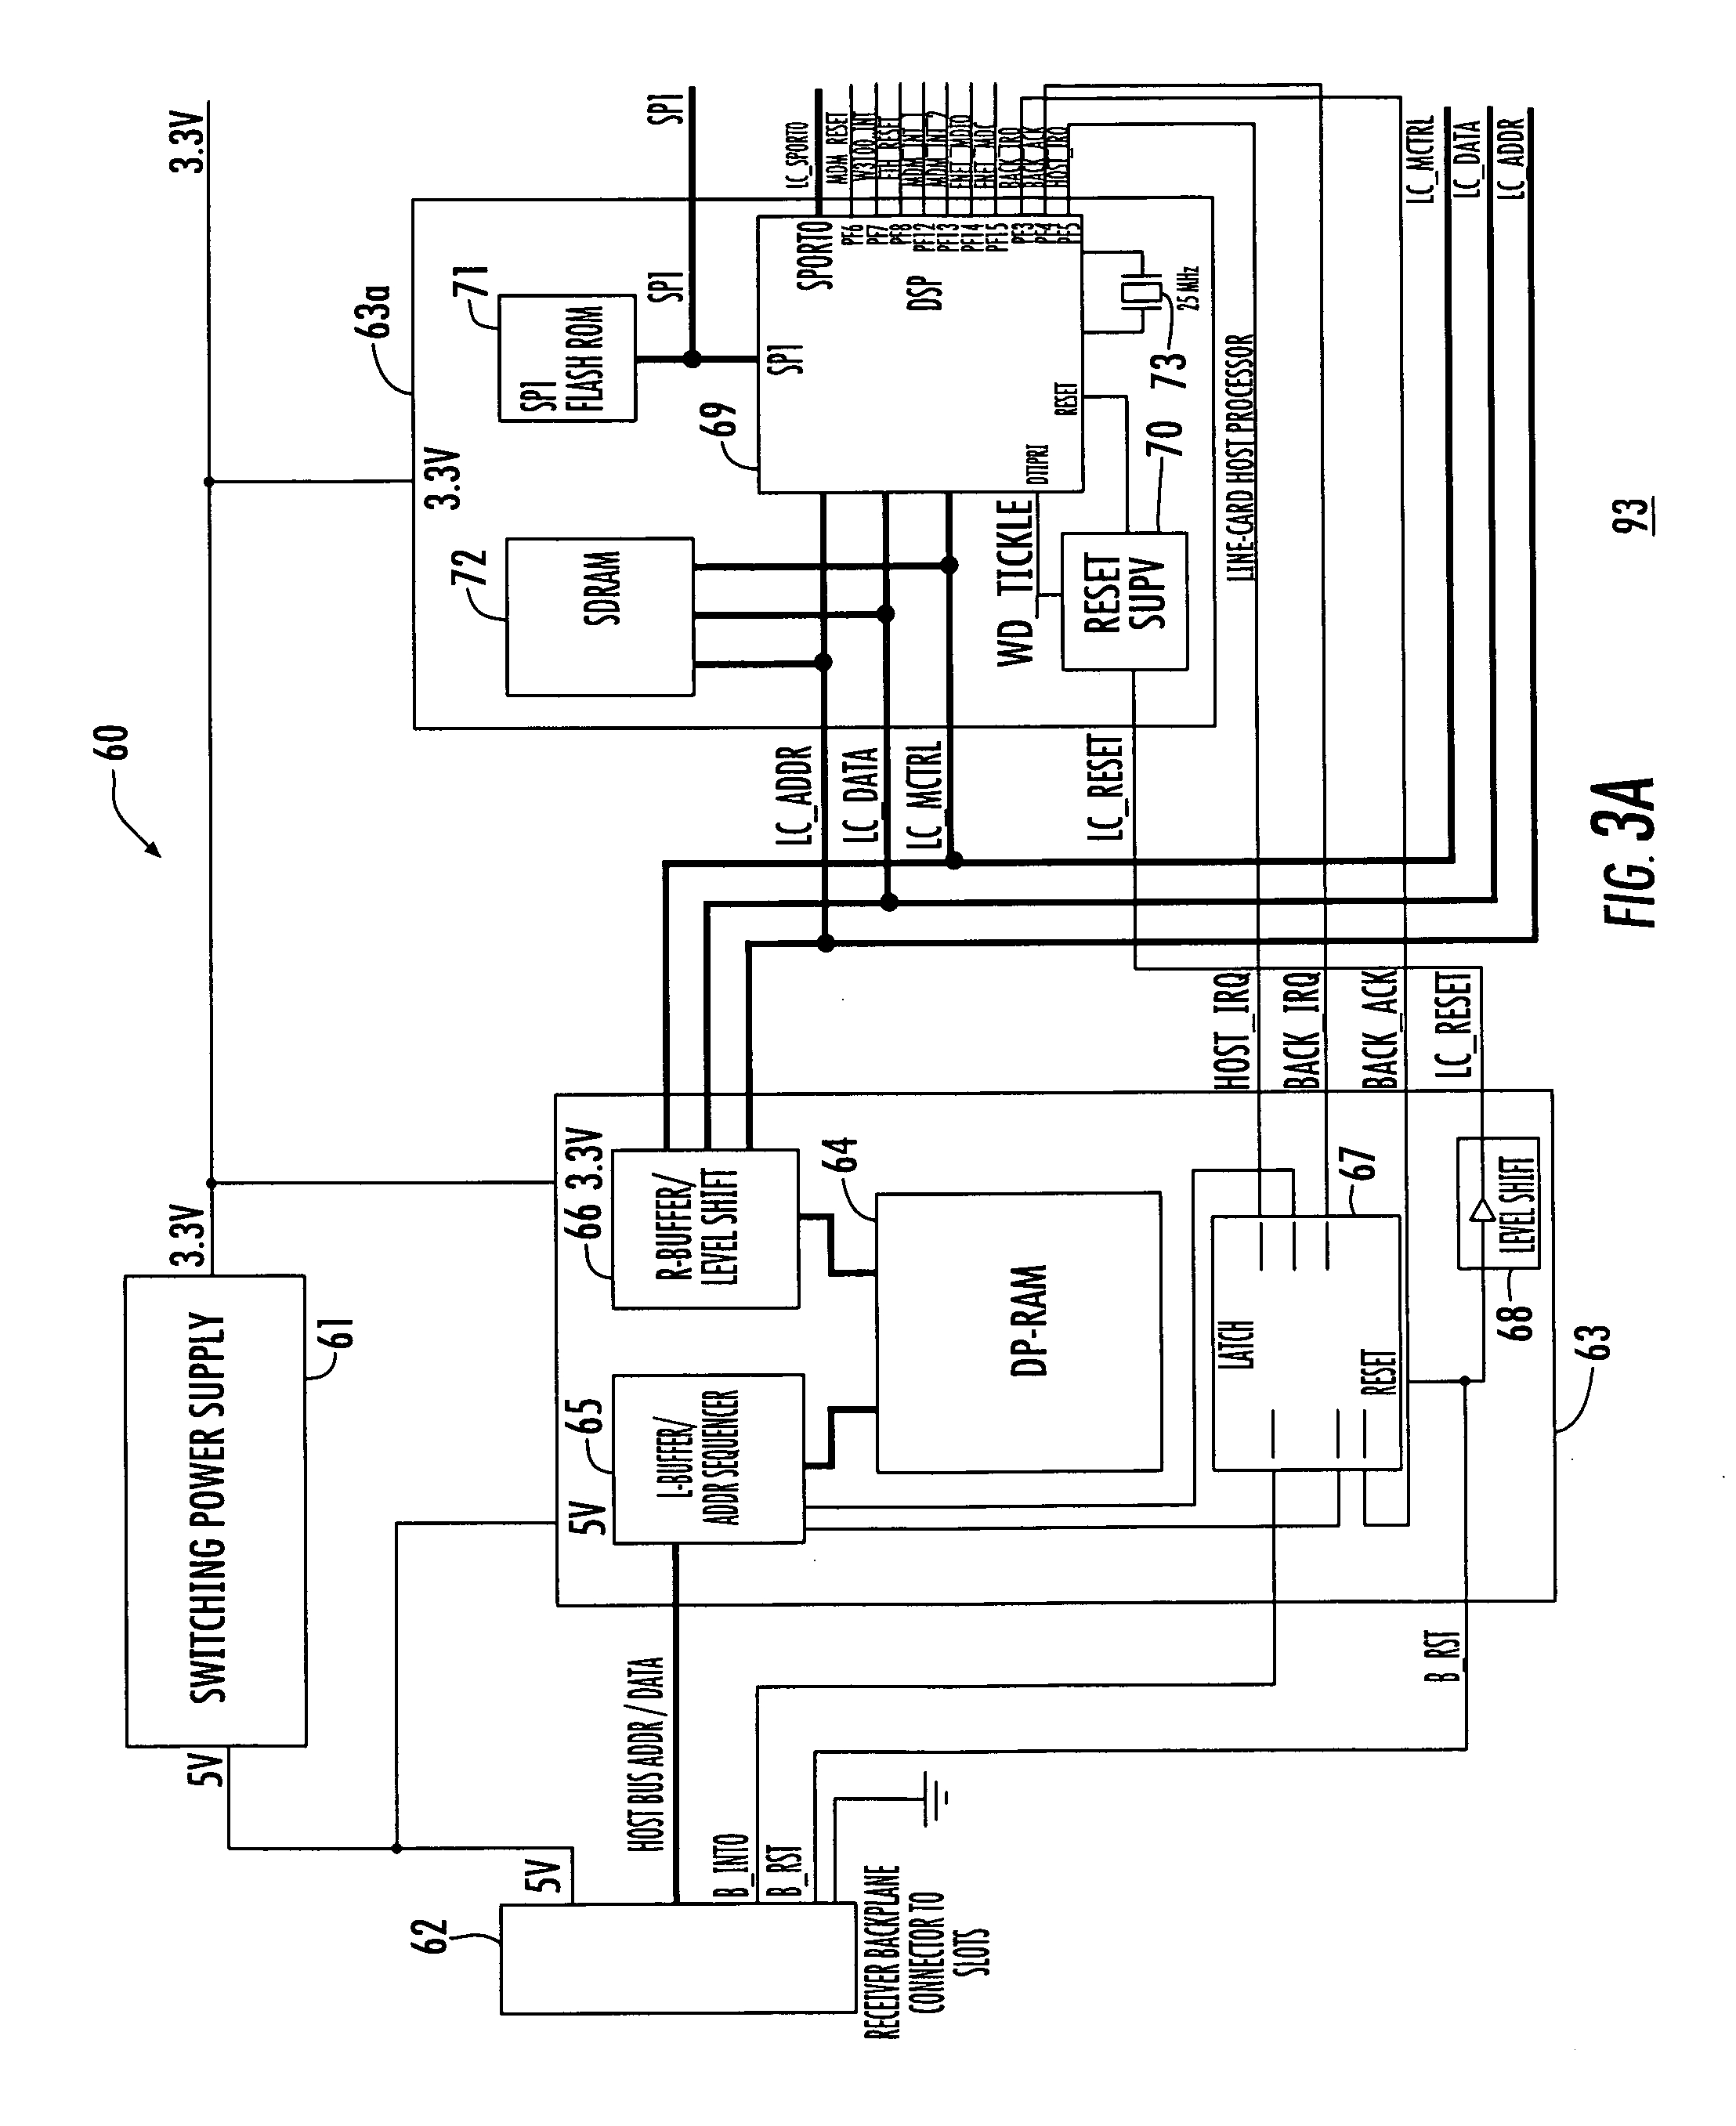 duct smoke detector wiring diagram Download-Smoke Detector Wiring Diagram Lovely Fortable Fire Alarm Circuit Styles Gallery The Best Electrical 14-n